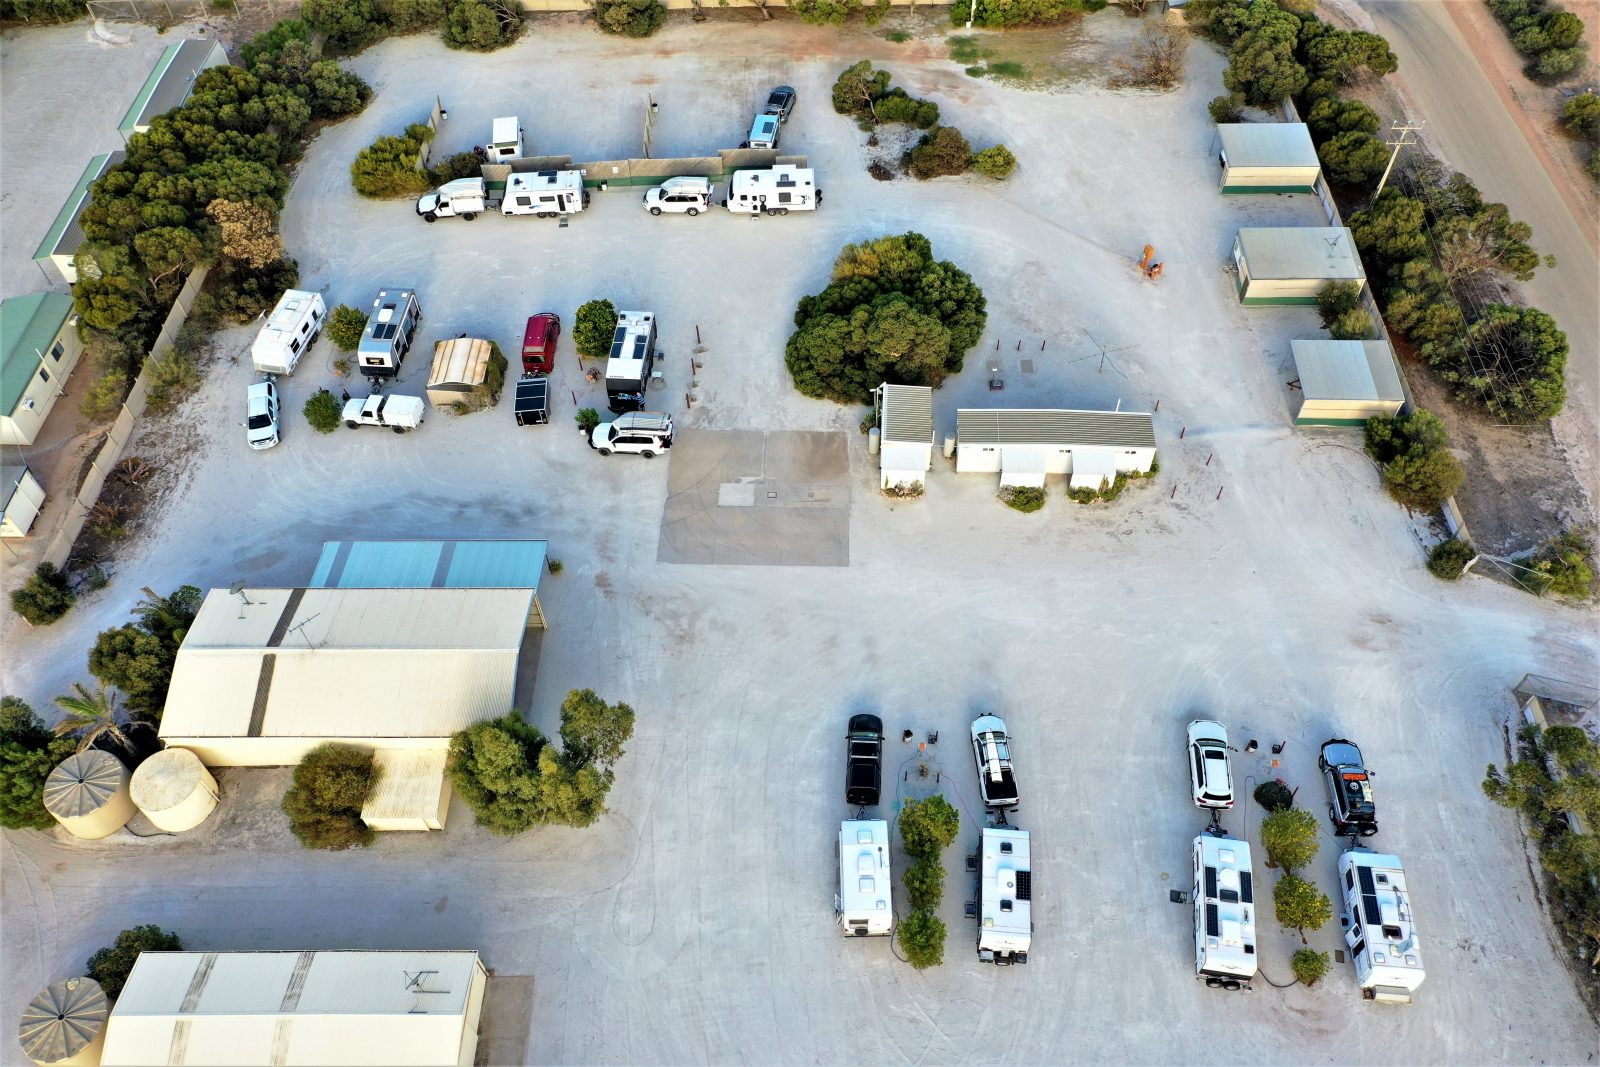 Penong Caravan Park fro the air with vans and facilities. Spacious, clean white gravel with trees.